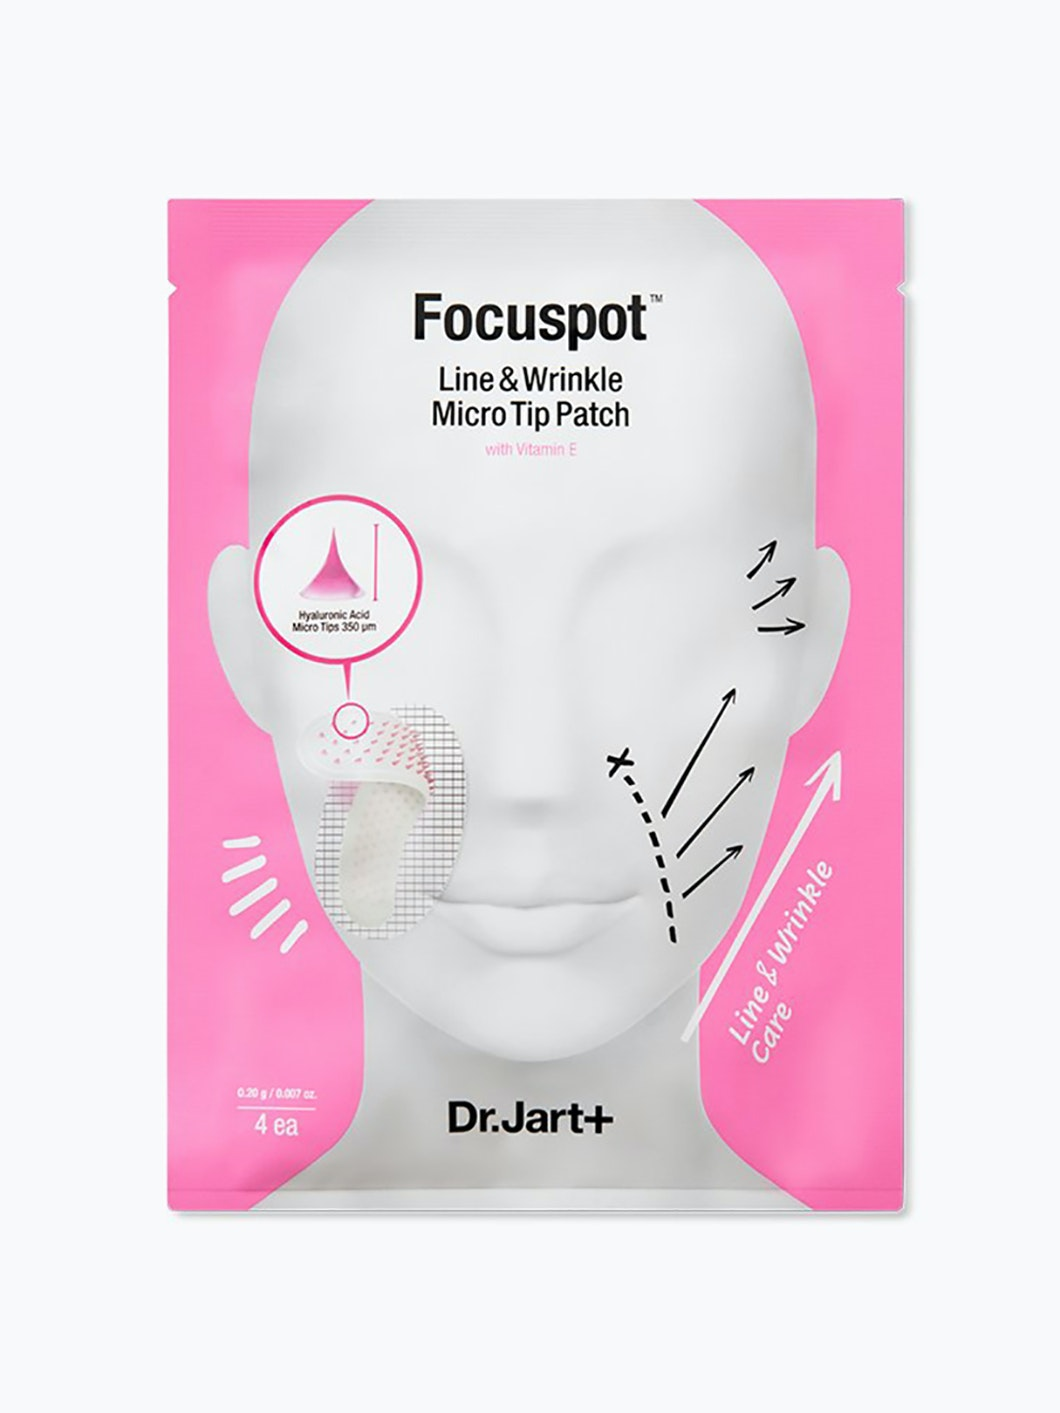 Dr. Jart+ Focuspot Line and Wrinkle Micro Tip Patch